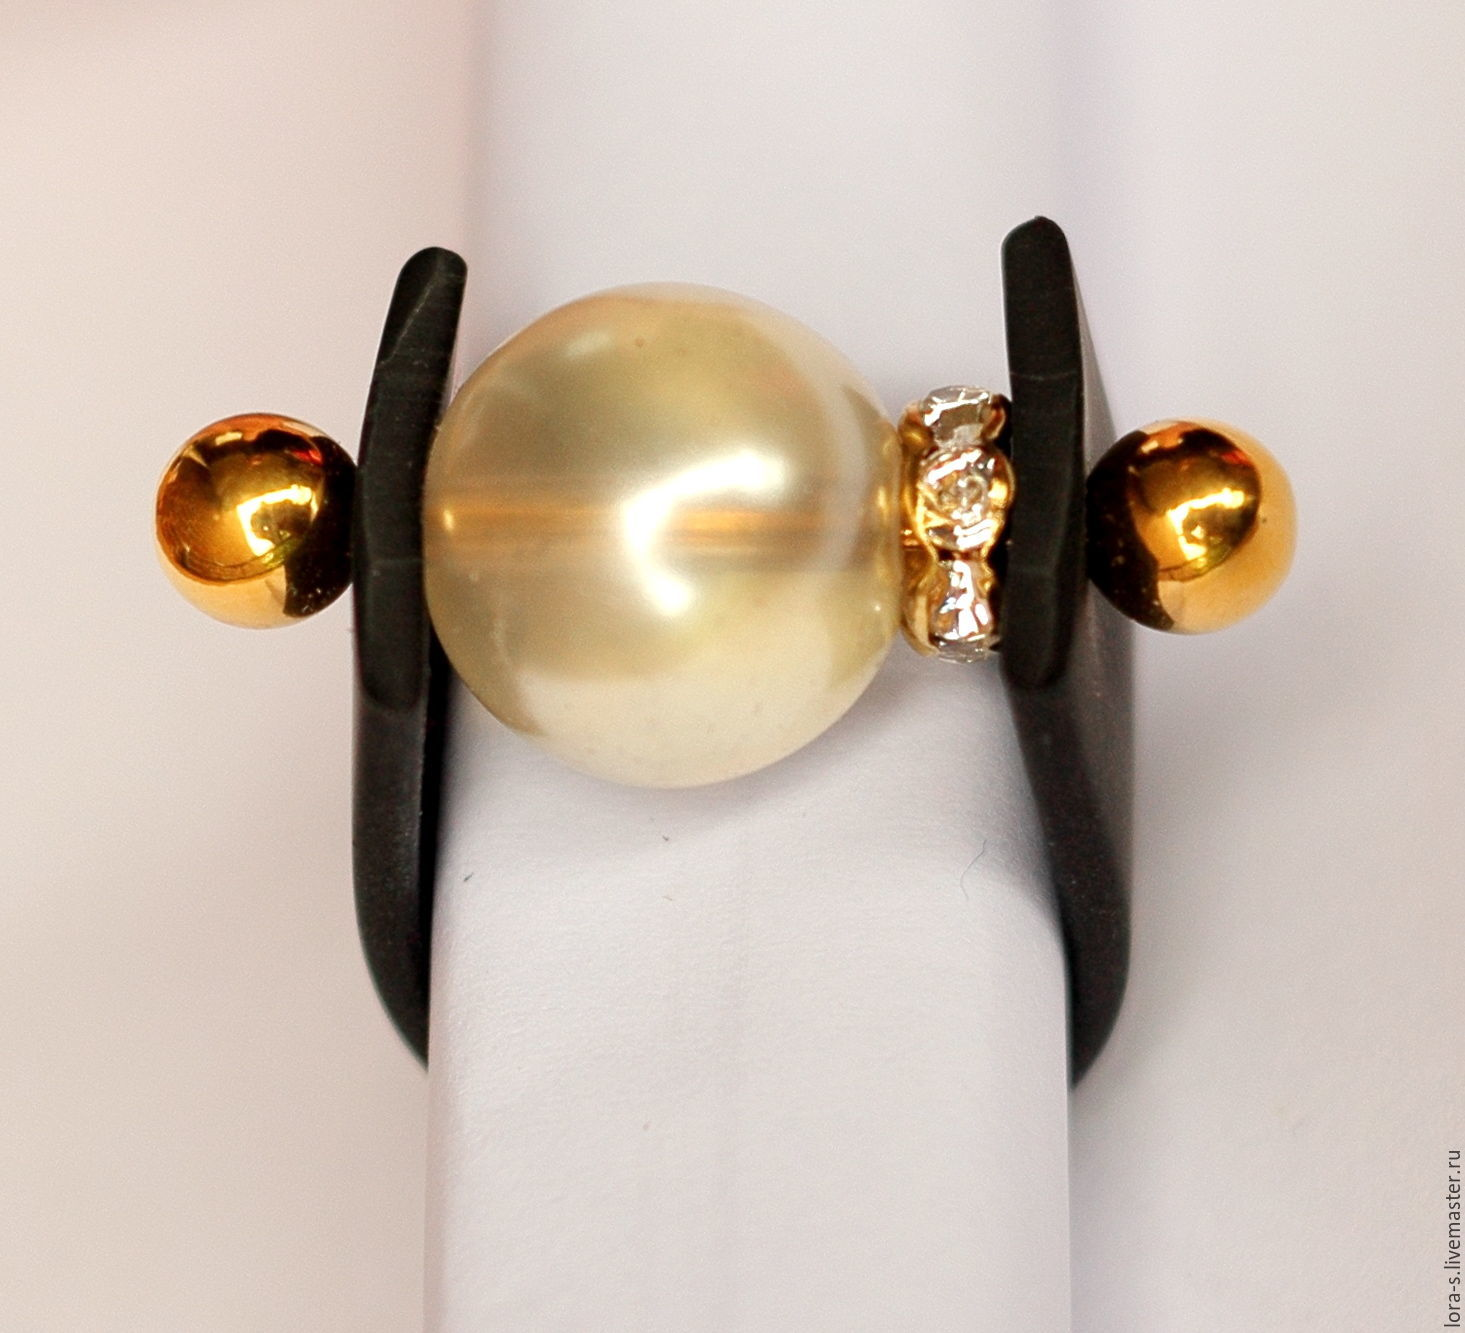 'Linda' rubber ring with a large pearl ball, Rings, Dusseldorf,  Фото №1